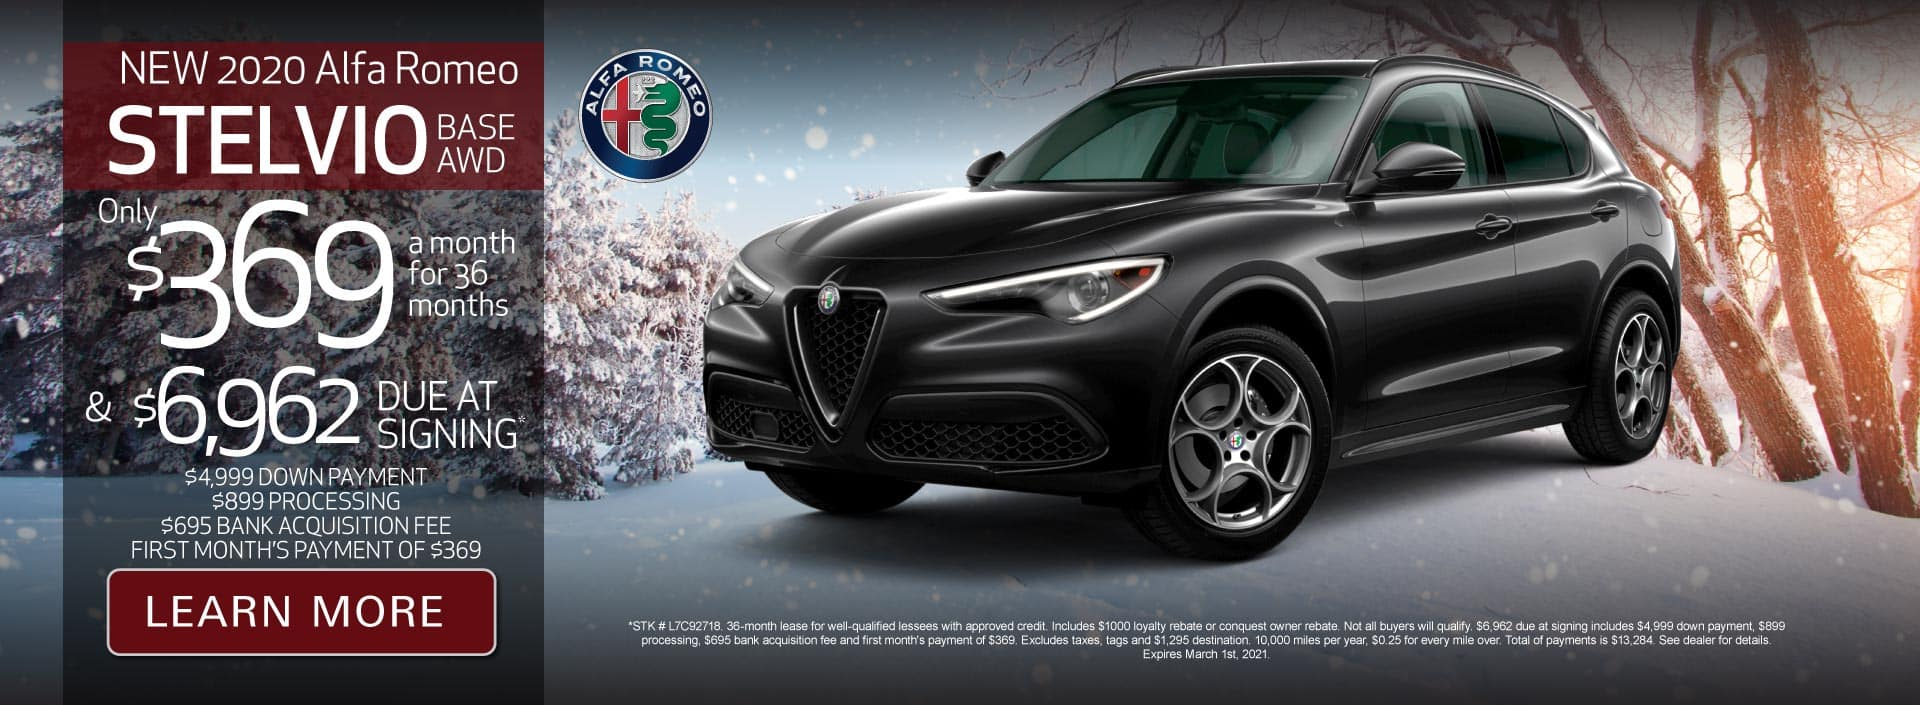 New 2020 Stelvio Base AWD Only $369 a month for 36 months | Learn More